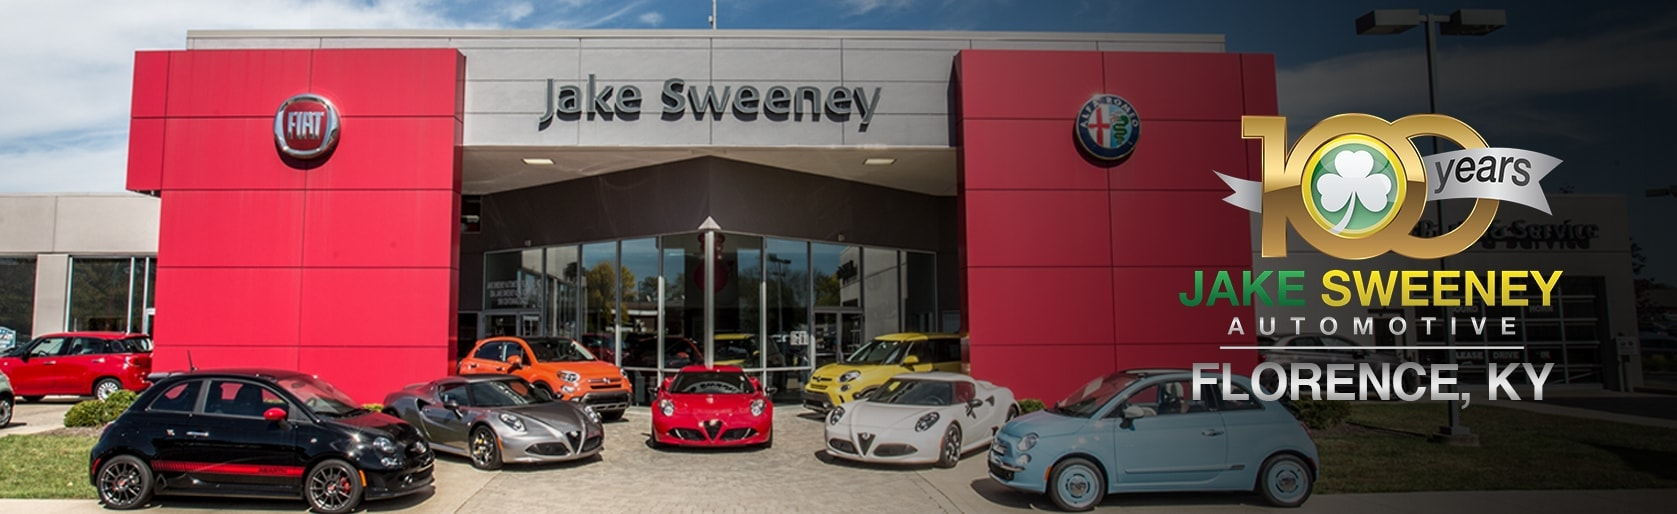 Jake Sweeney Automotive - New And Used Cars, Trucks, And ...